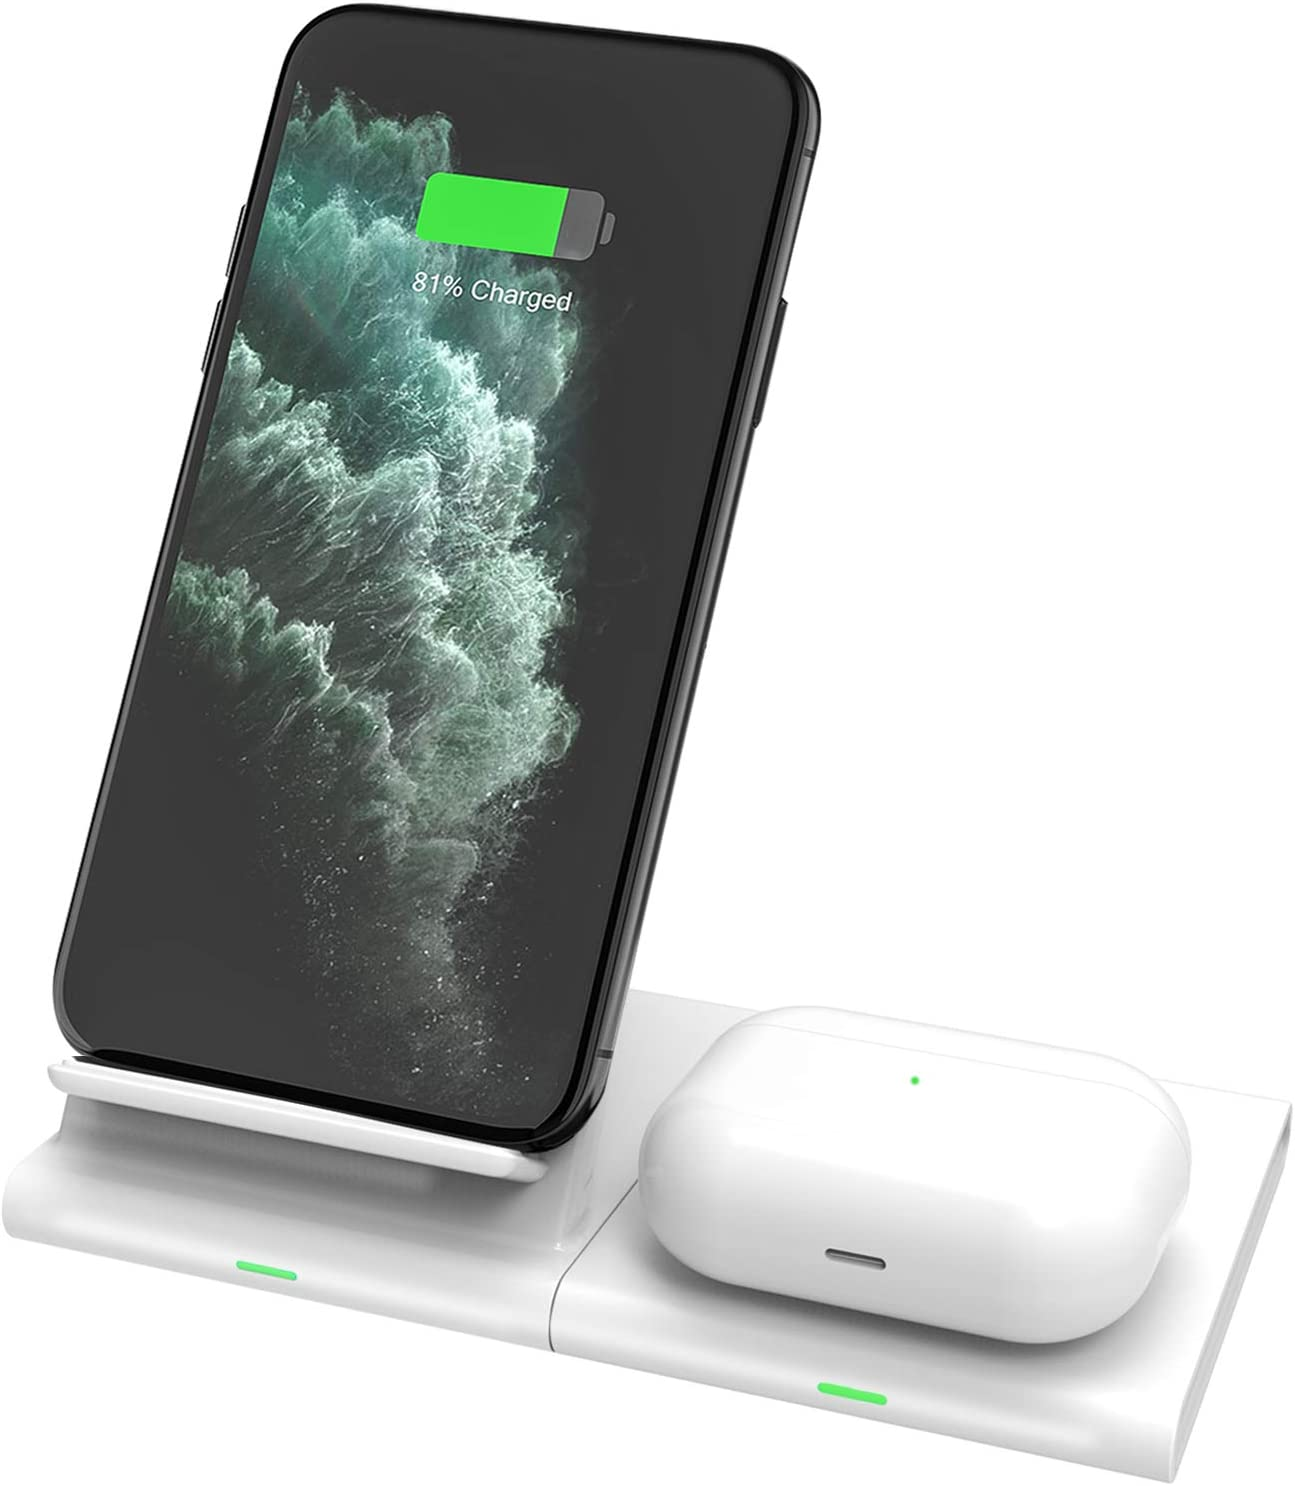 Hoidokly Cargador Inalámbrico Rápido Qi Fast Wireless Charger 7.5W Compatible con iPhone 11/11 Pro Max/X/XR/XS/8/8 Plus, 10W Carga para Galaxy Z Flip/S20/S20+/S10/S10+/S10e/S9/S8/S7/Note 10/10+/9/8